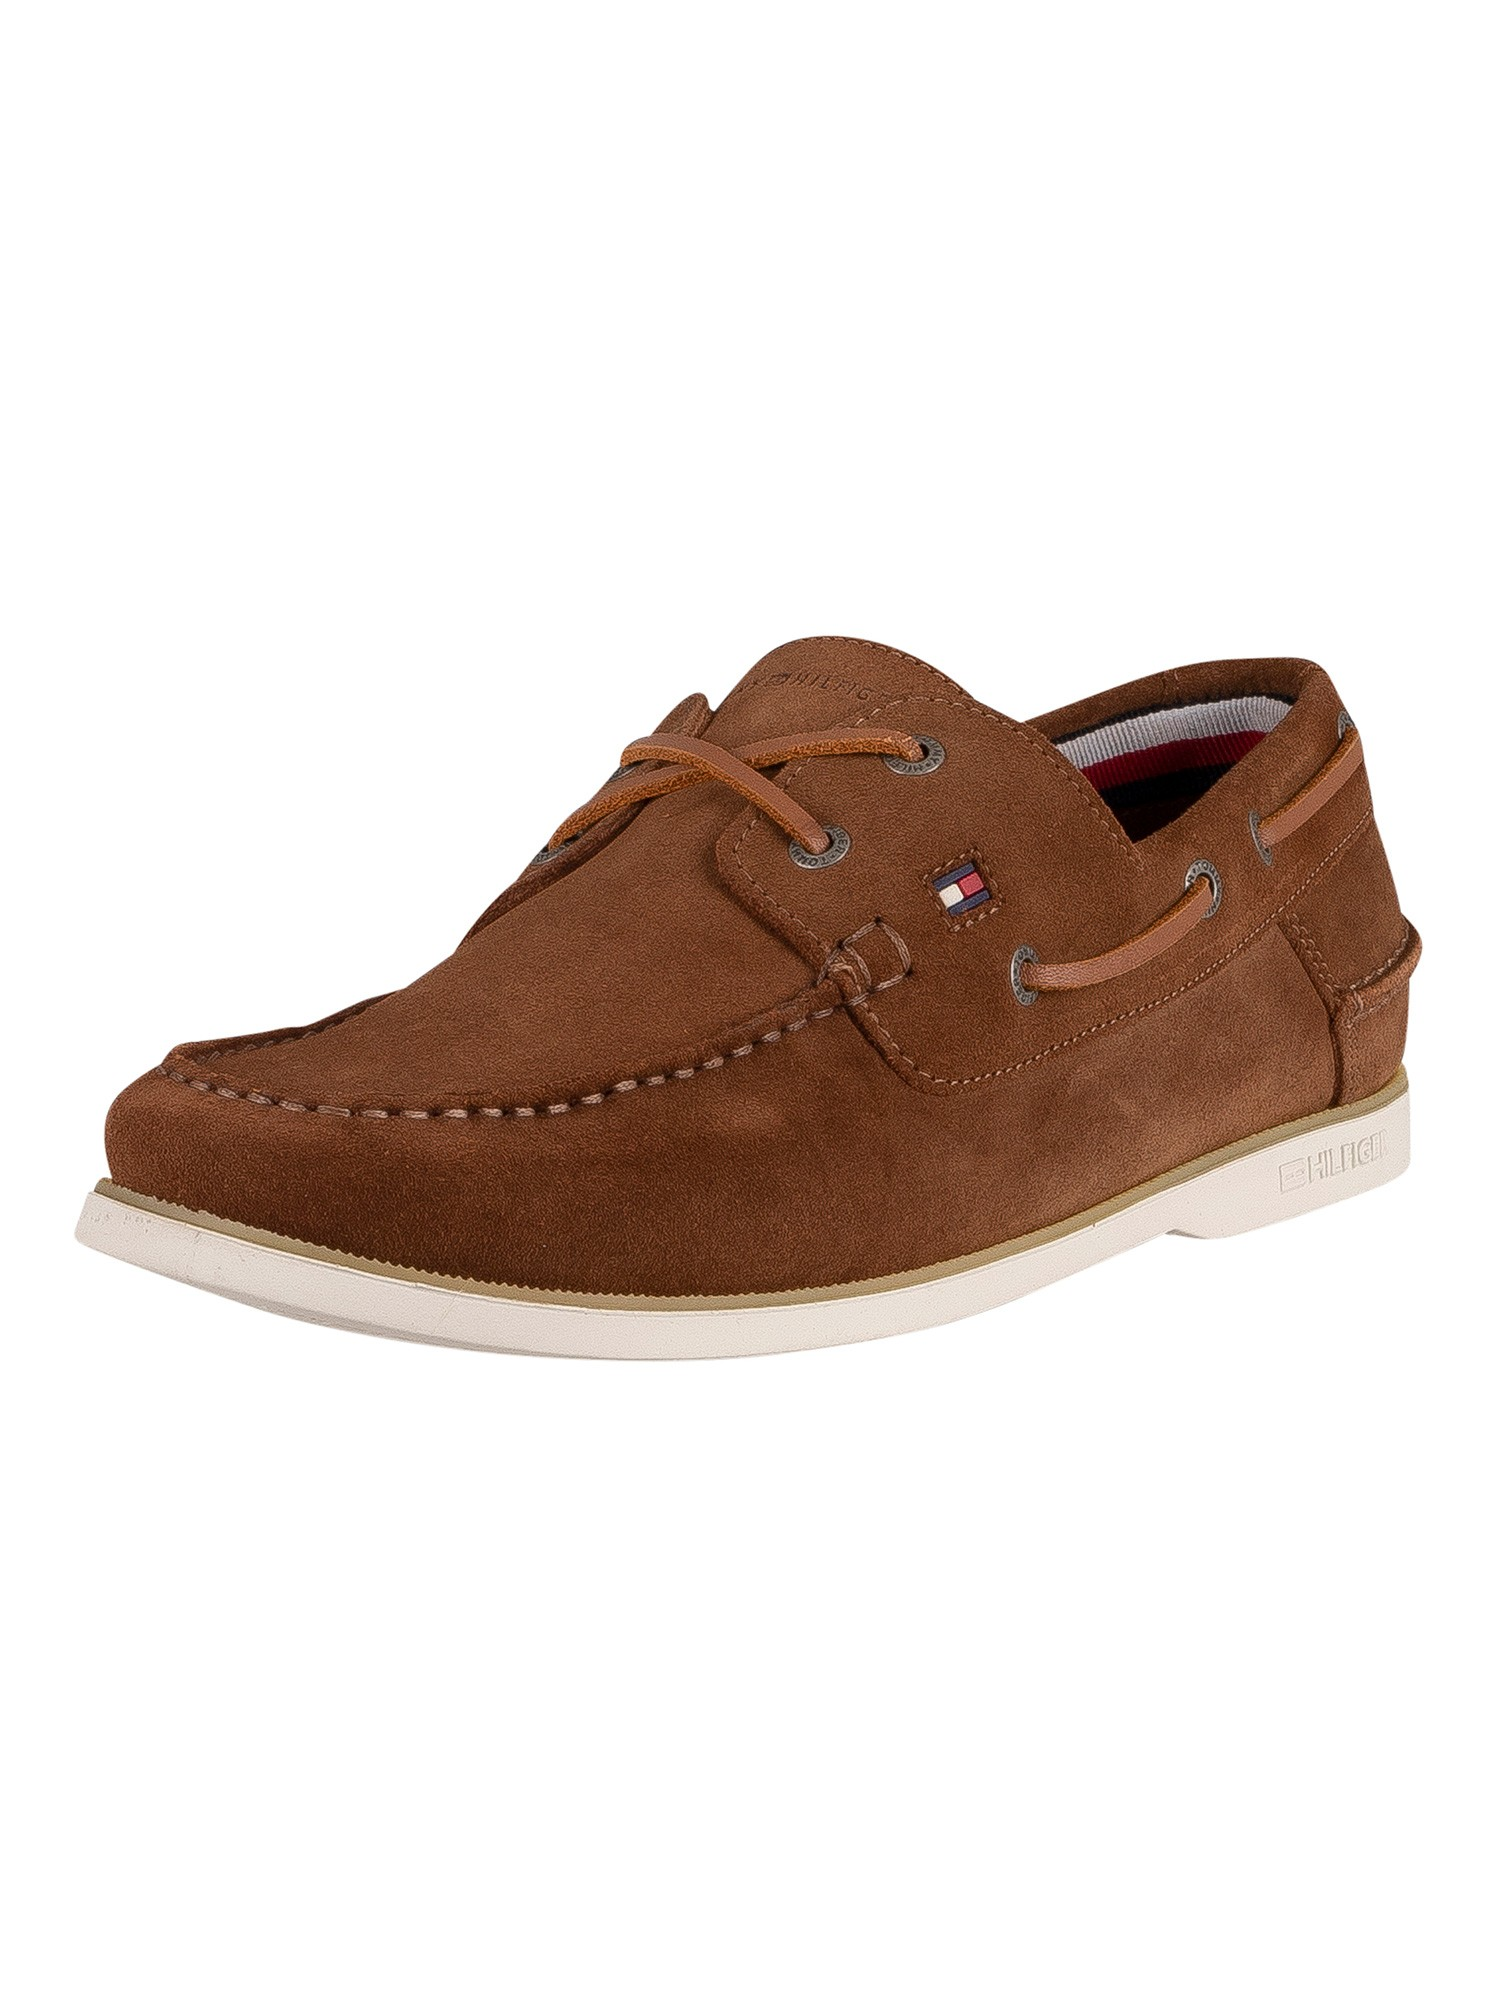 Classic-Suede-Boat-Shoes